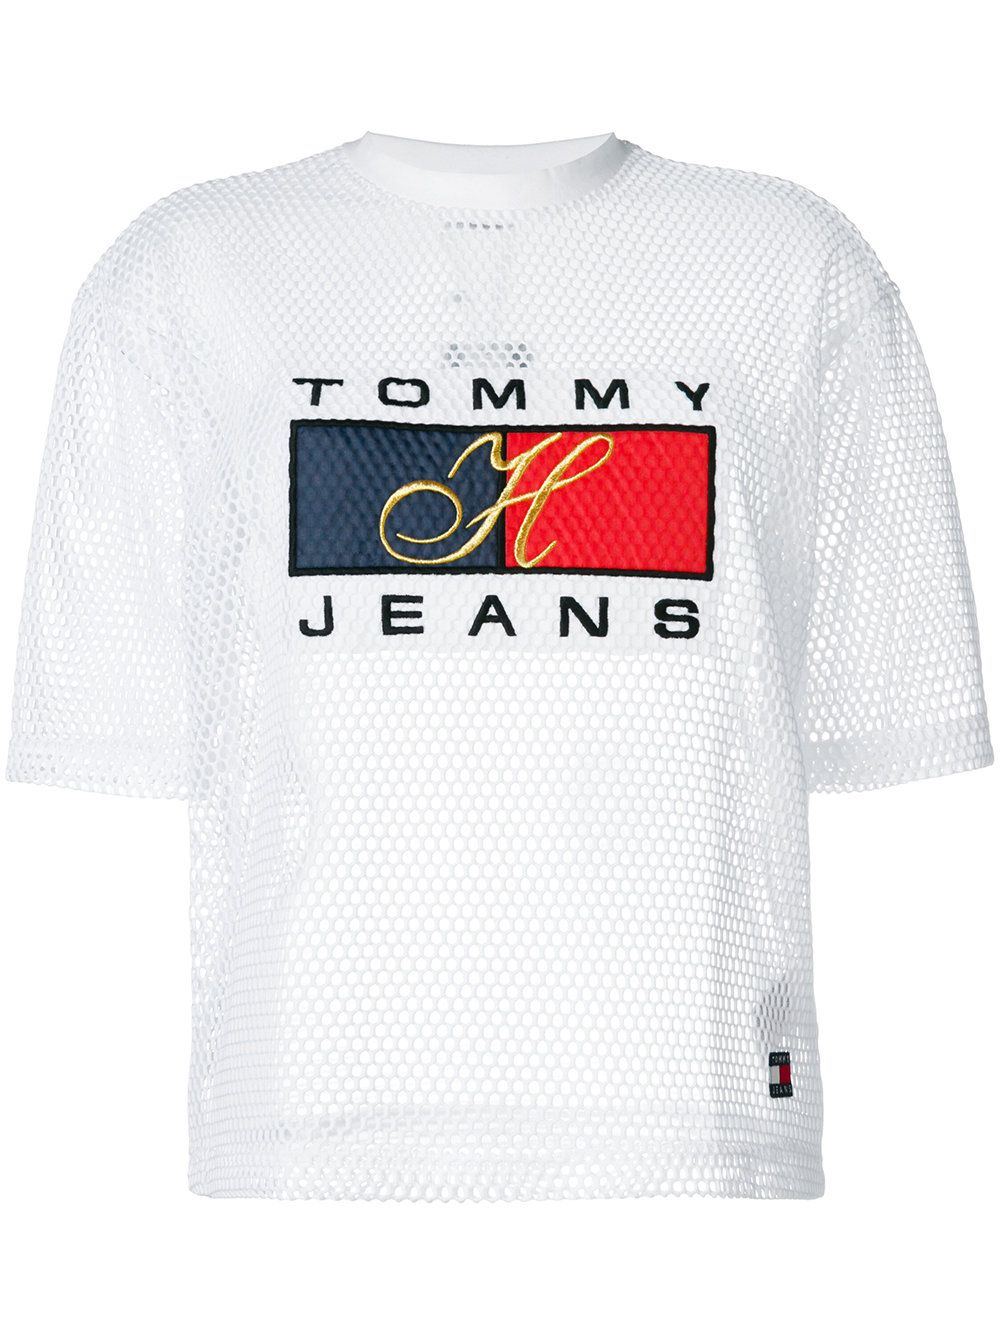 84a88fcf933685 Tommy Jeans logo T-shirt | Erkek Fashion in 2019 | Shirts, T shirt ...